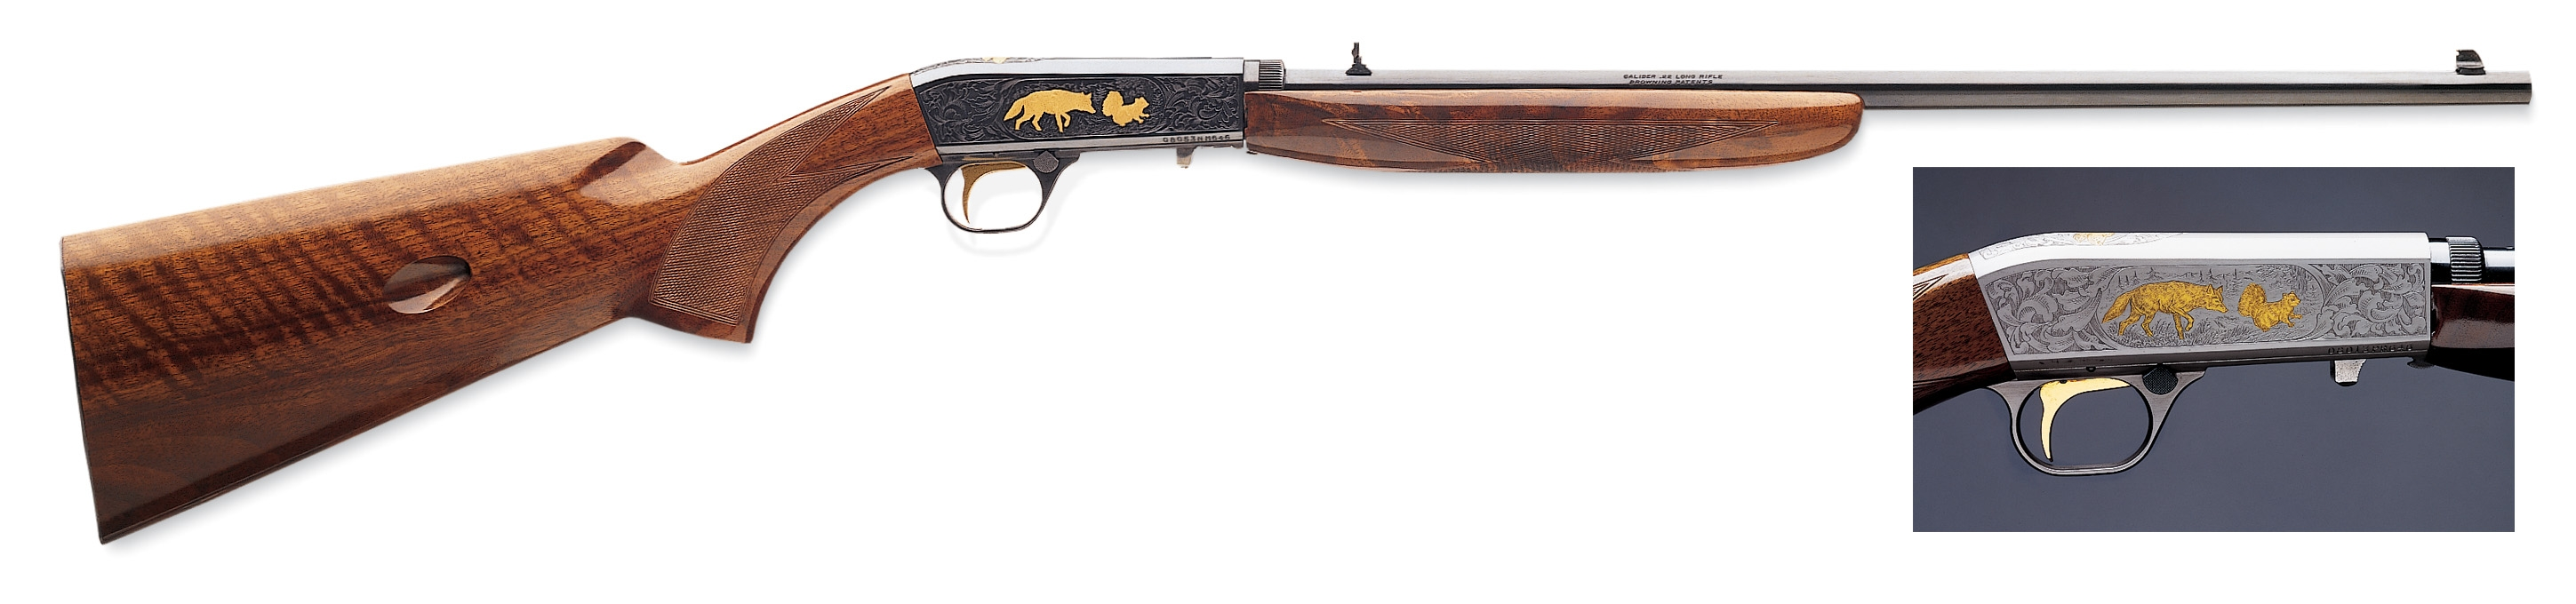 Browning Semi-Auto 22 Grade VI Grayed